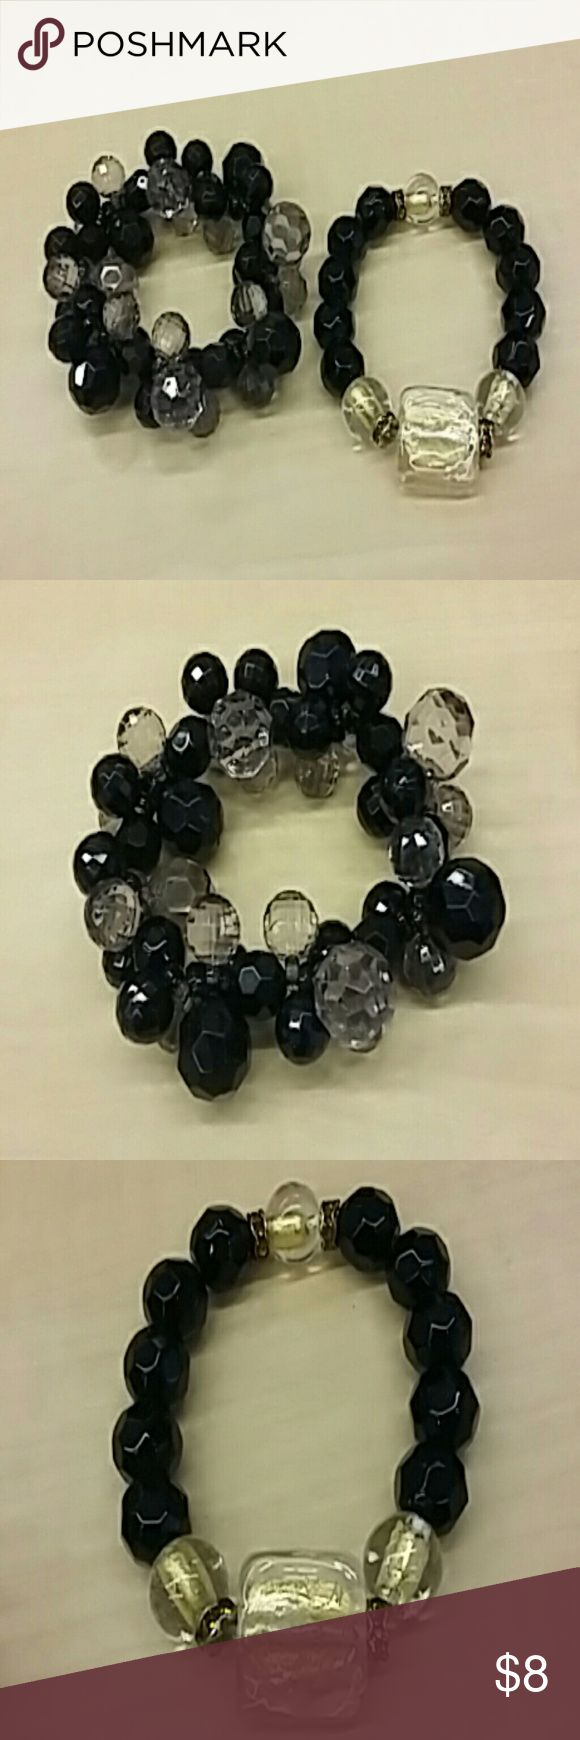 Lot of jet and crystal bead stretch bracelets One bracelet is faux jet and smoky gray faux crystal beads on stretch band; other bracelet is faux jet and crystal and gold beads with topaz rhinestone accents on strtch band. Very nice worn separately or together. PRICE INCLUDES BOTH BRACELETS! Jewelry Bracelets